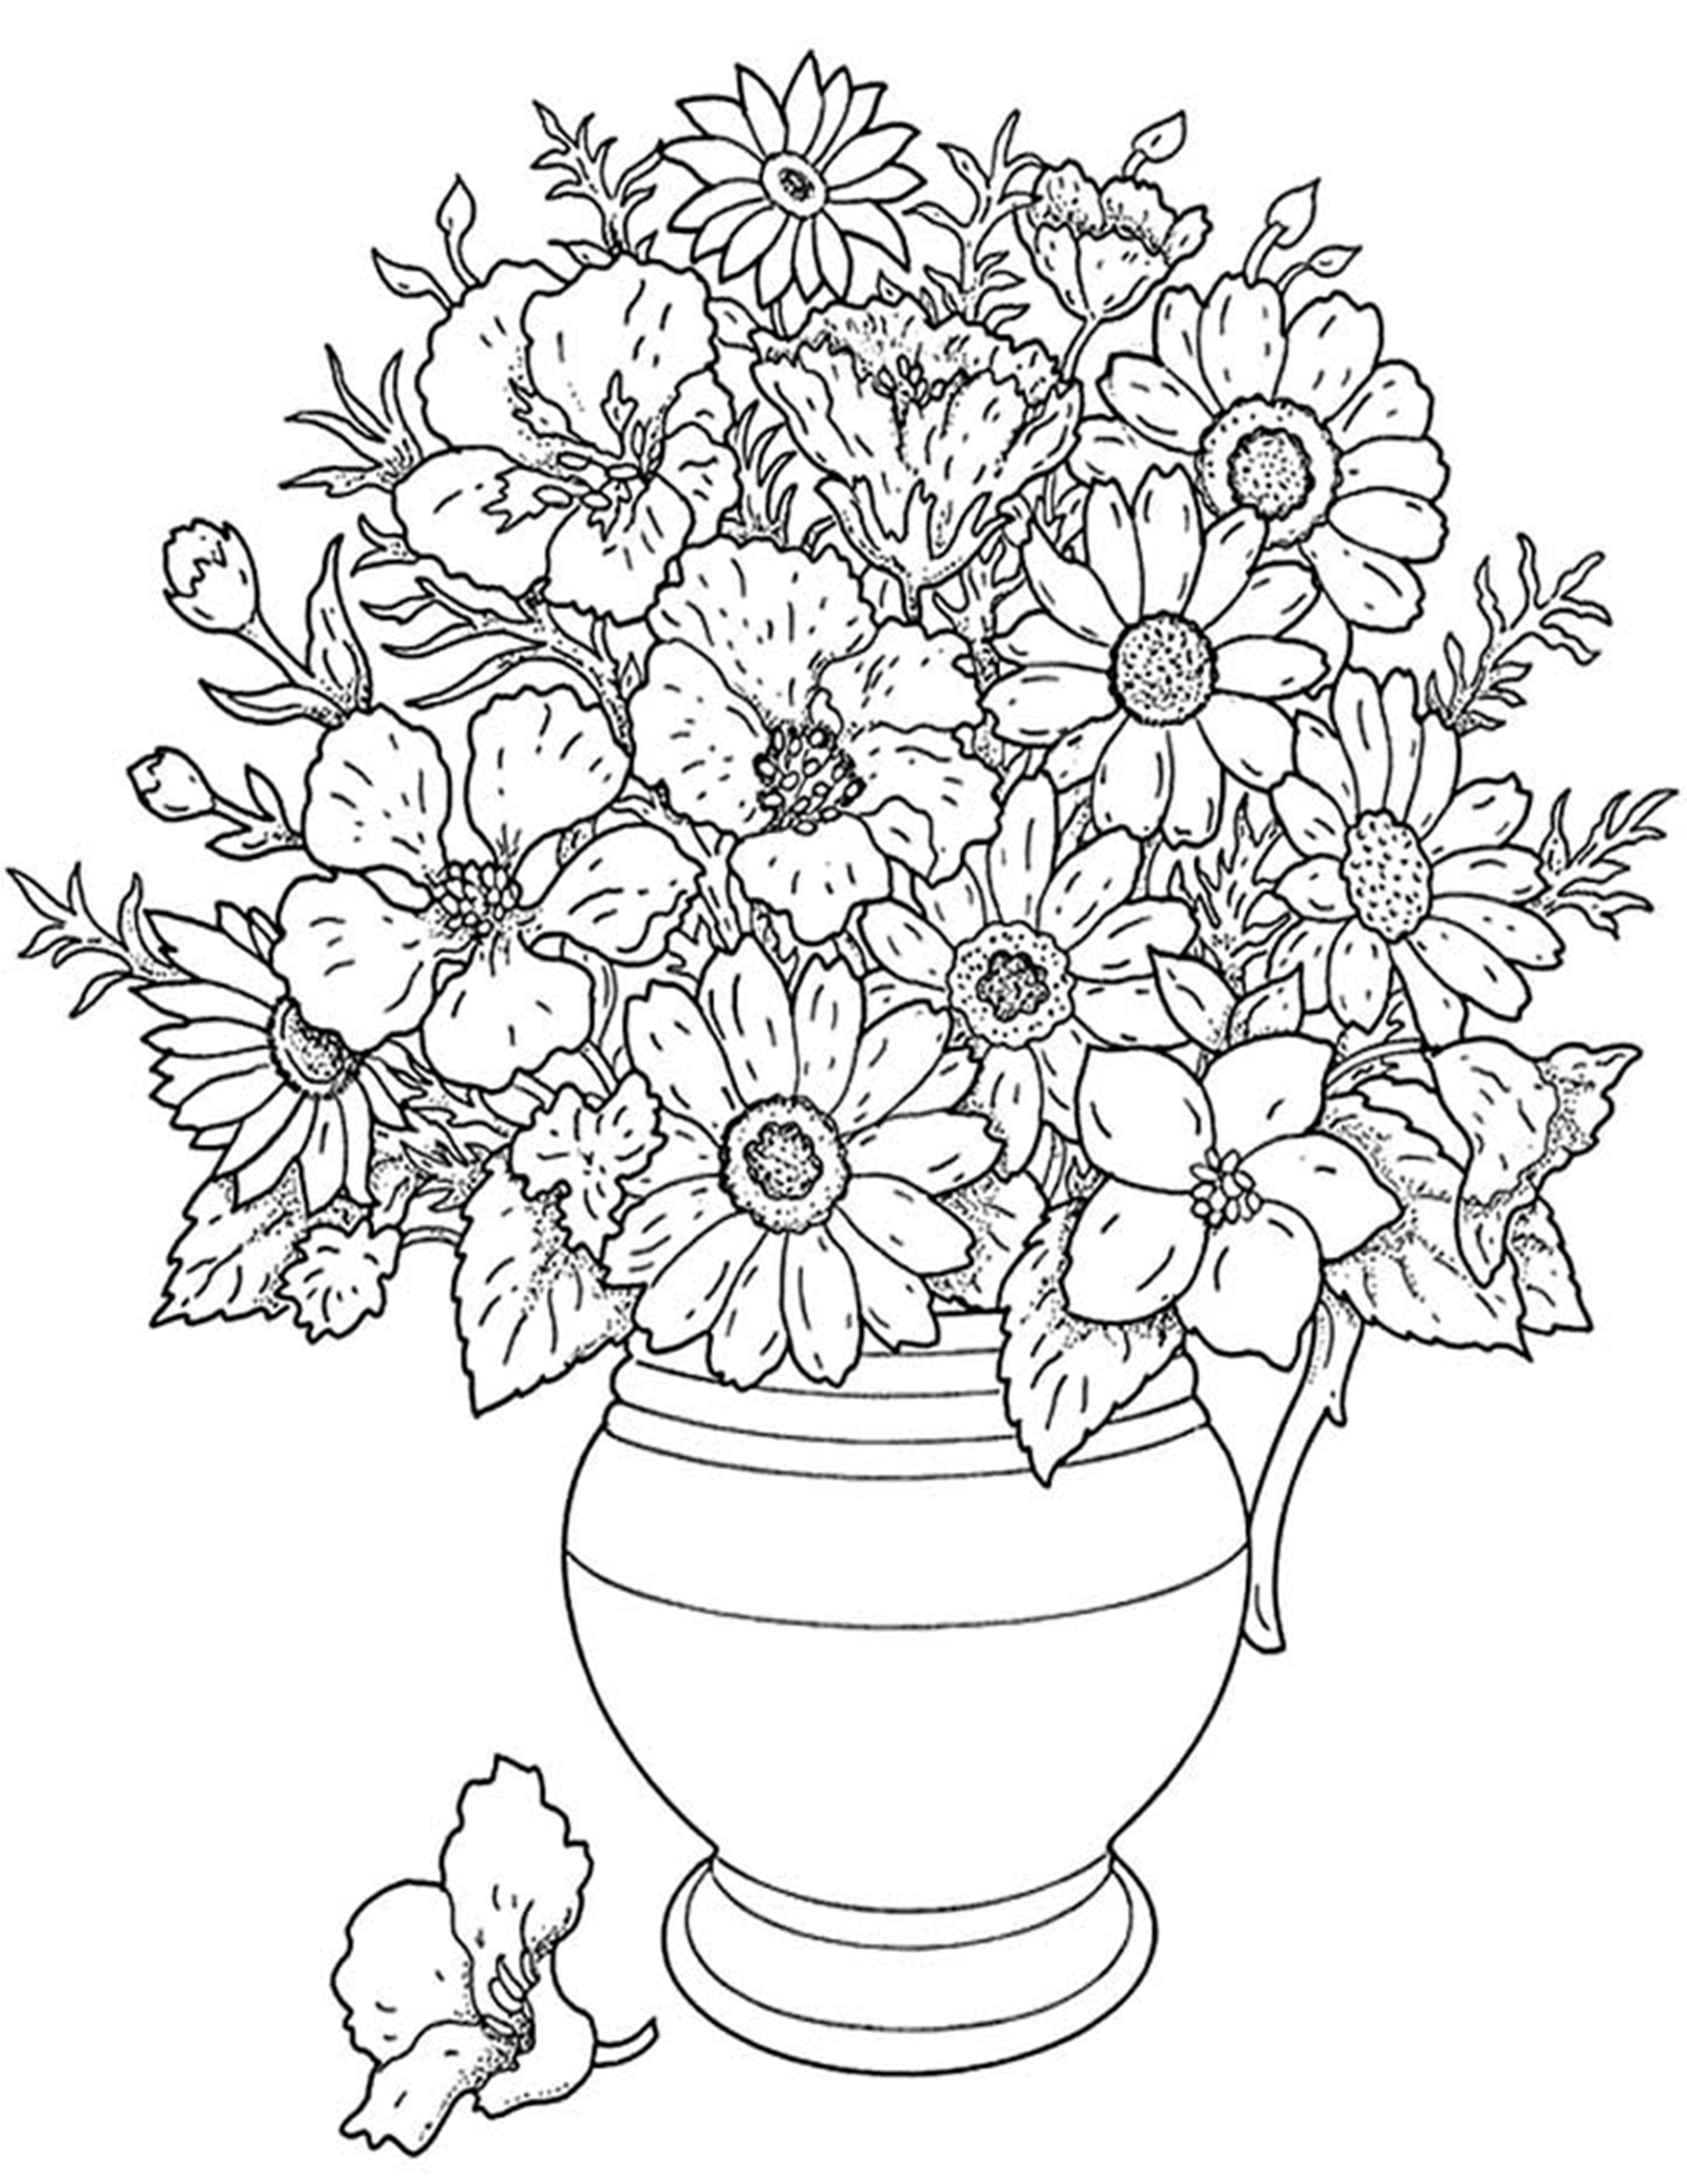 colouring page of flowers coloring town of colouring page flowers